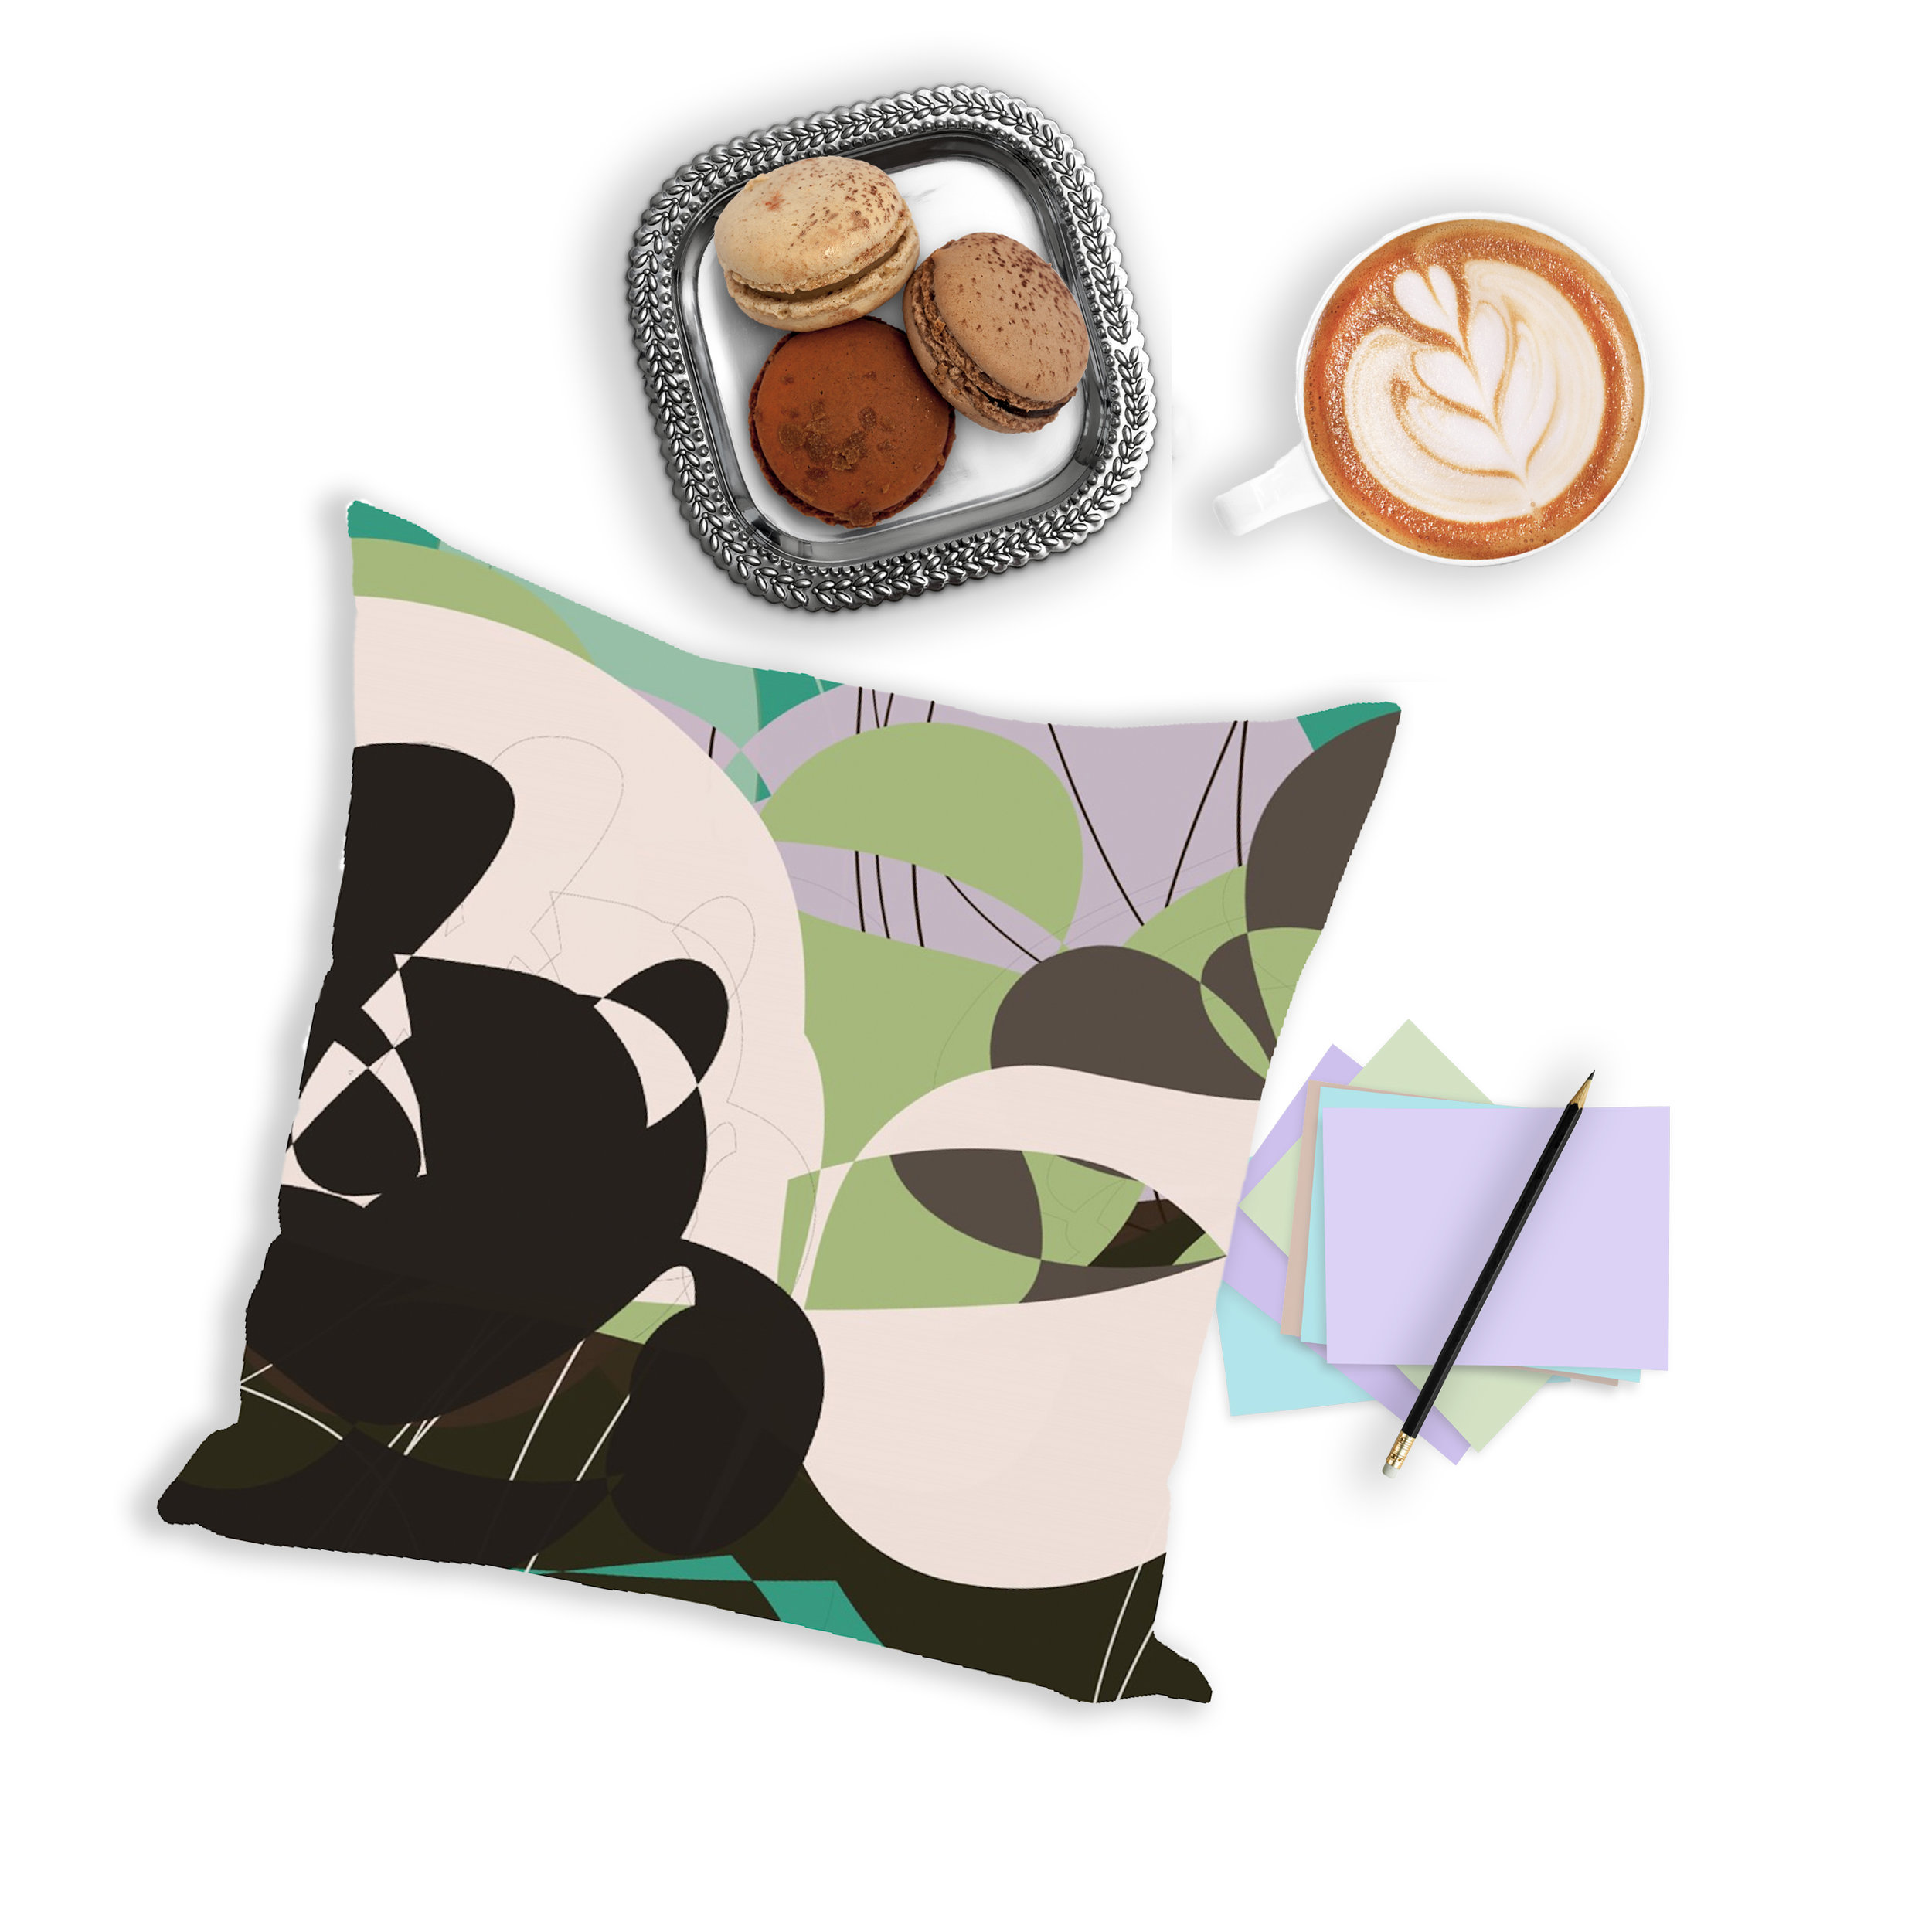 caper-pillow-mockup-with-cookies.jpg